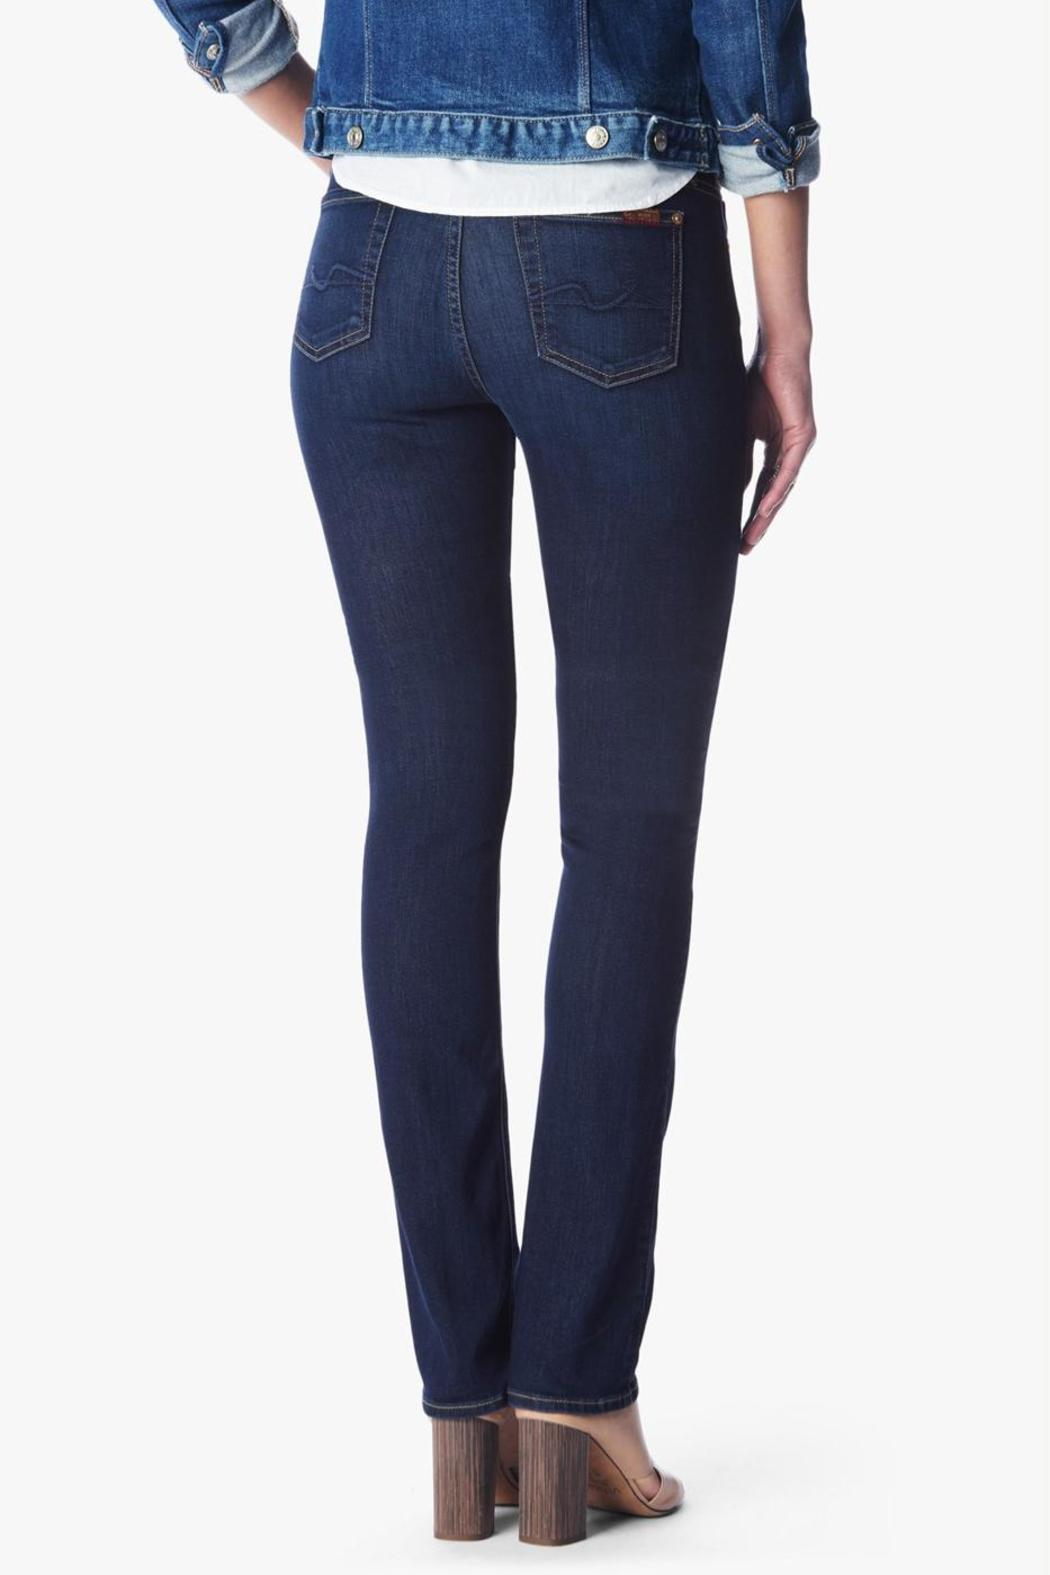 7 For all Mankind Kimmie Straight Duchess - Front Cropped Image